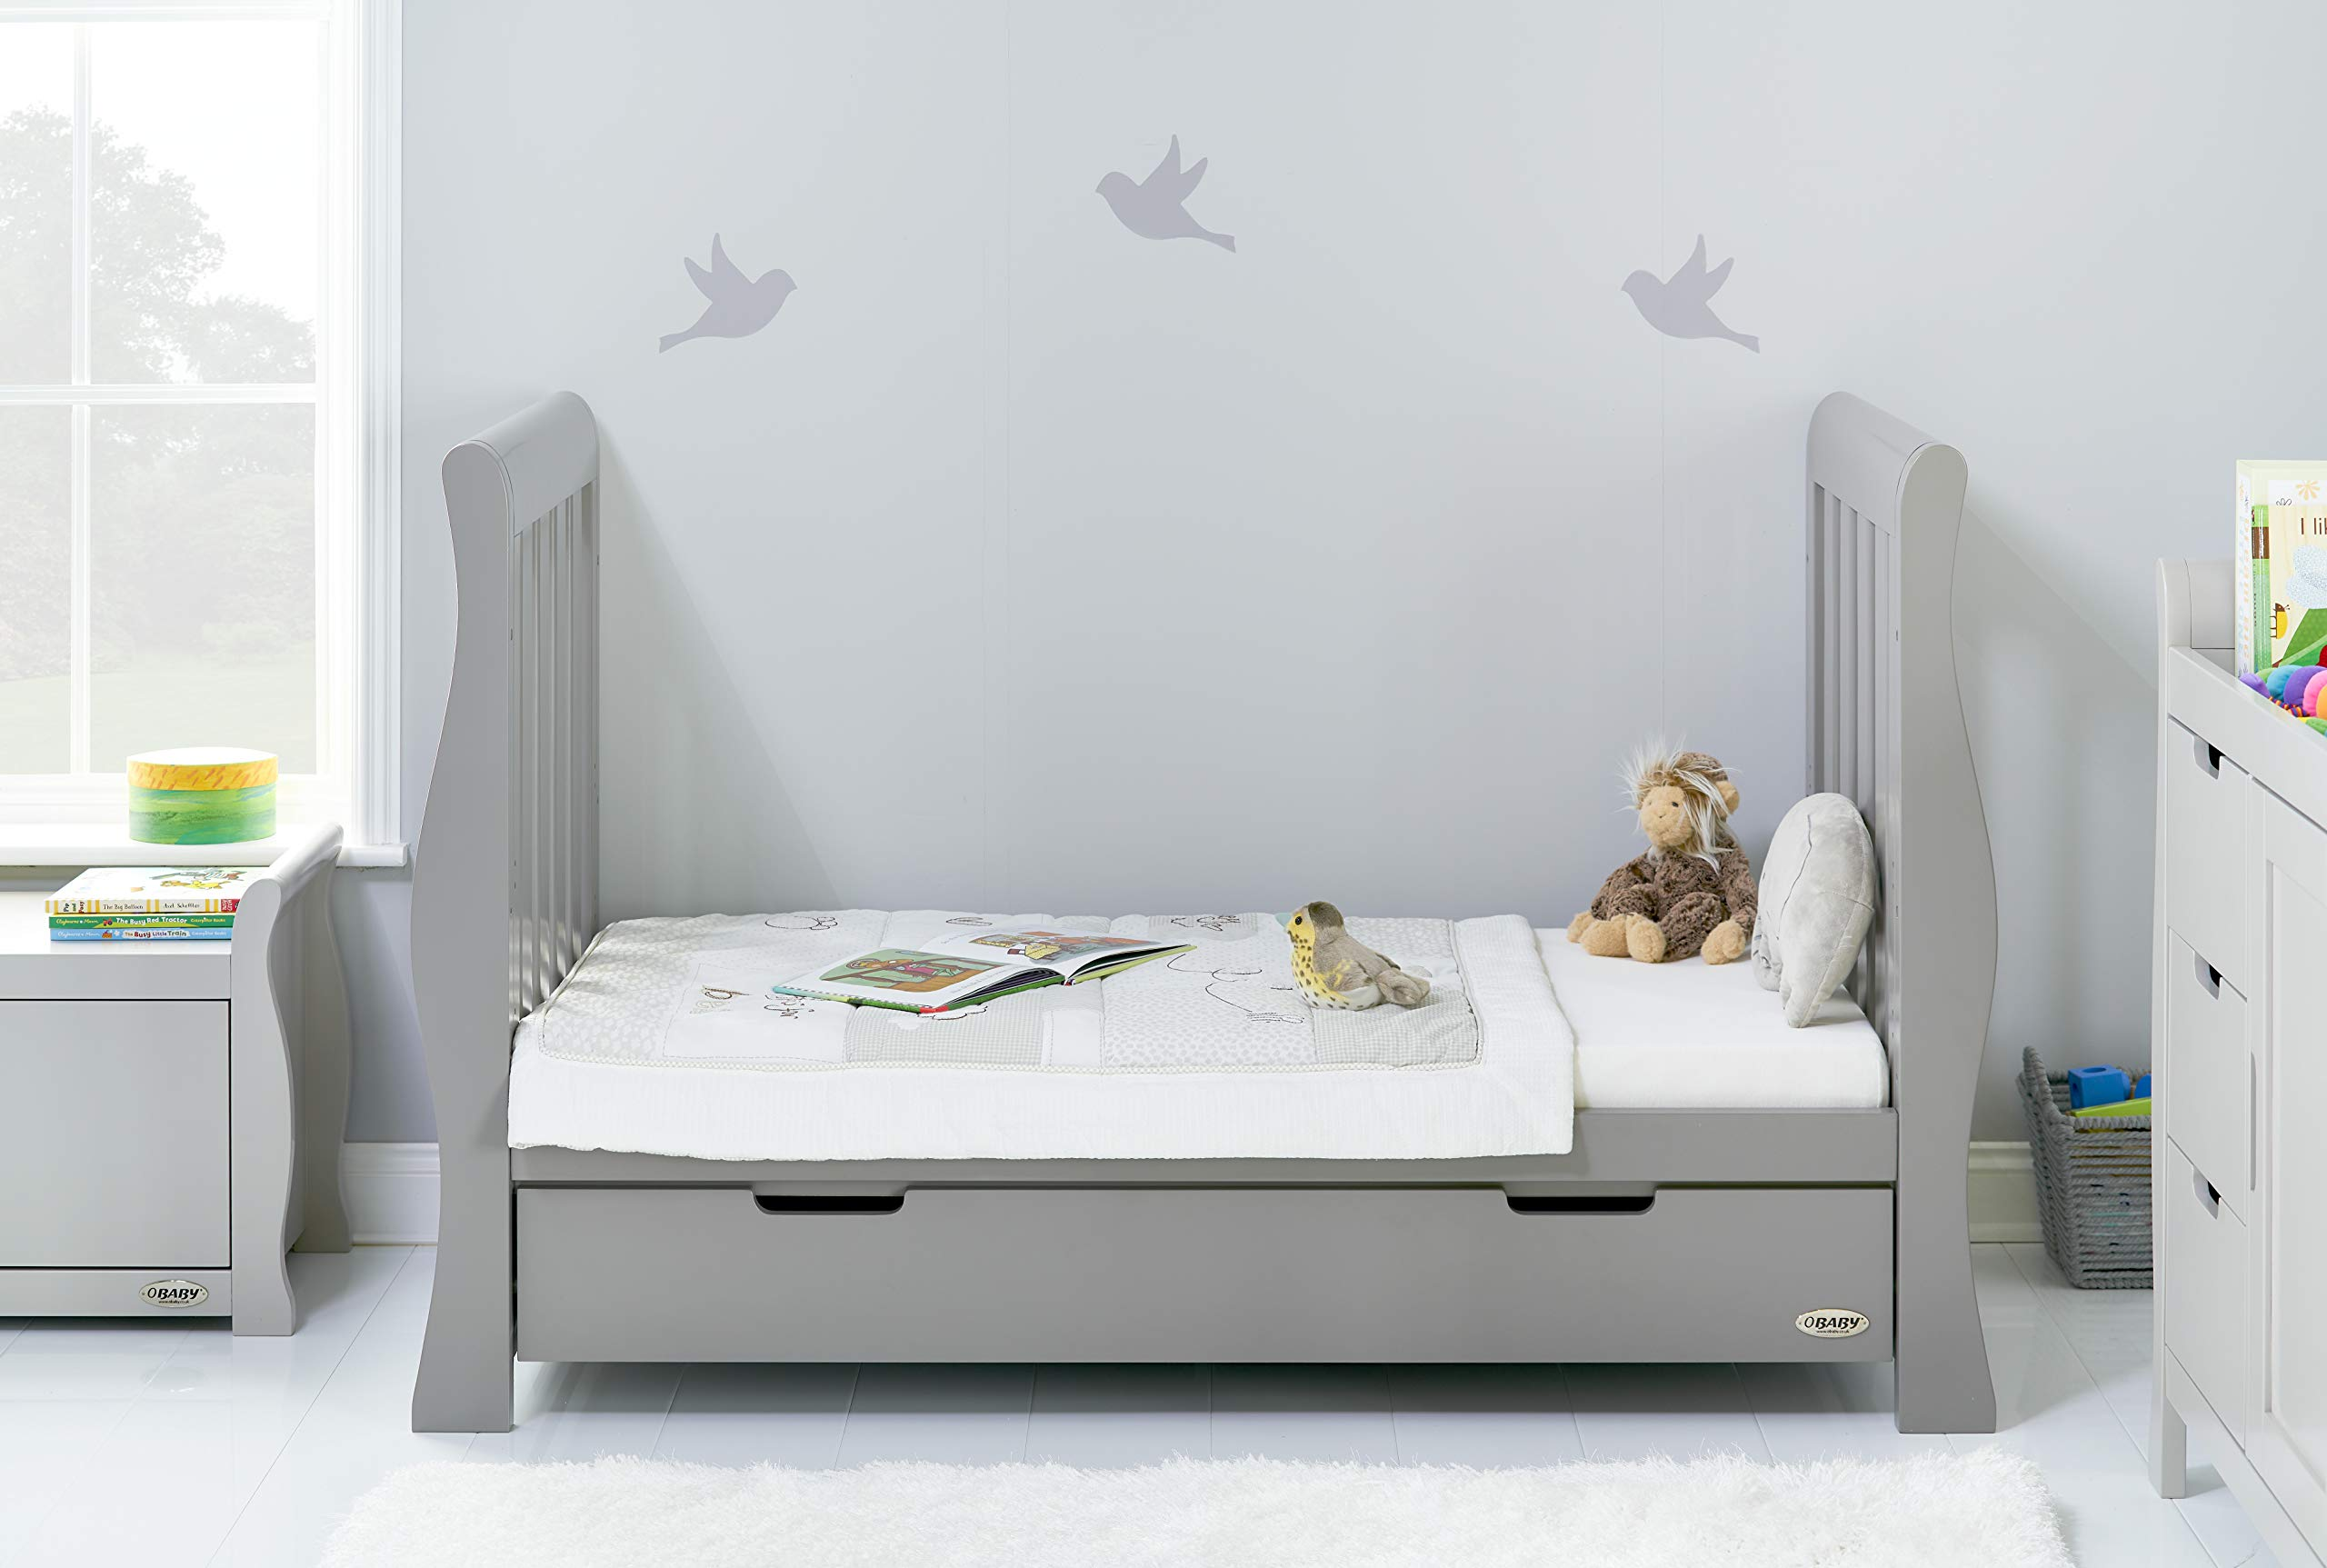 Obaby Stamford Luxe Sleigh Cot Bed, Warm Grey Obaby Adjustable 3 position mattress height Sides remove to transform into toddler bed Includes matching under drawer for storage 3